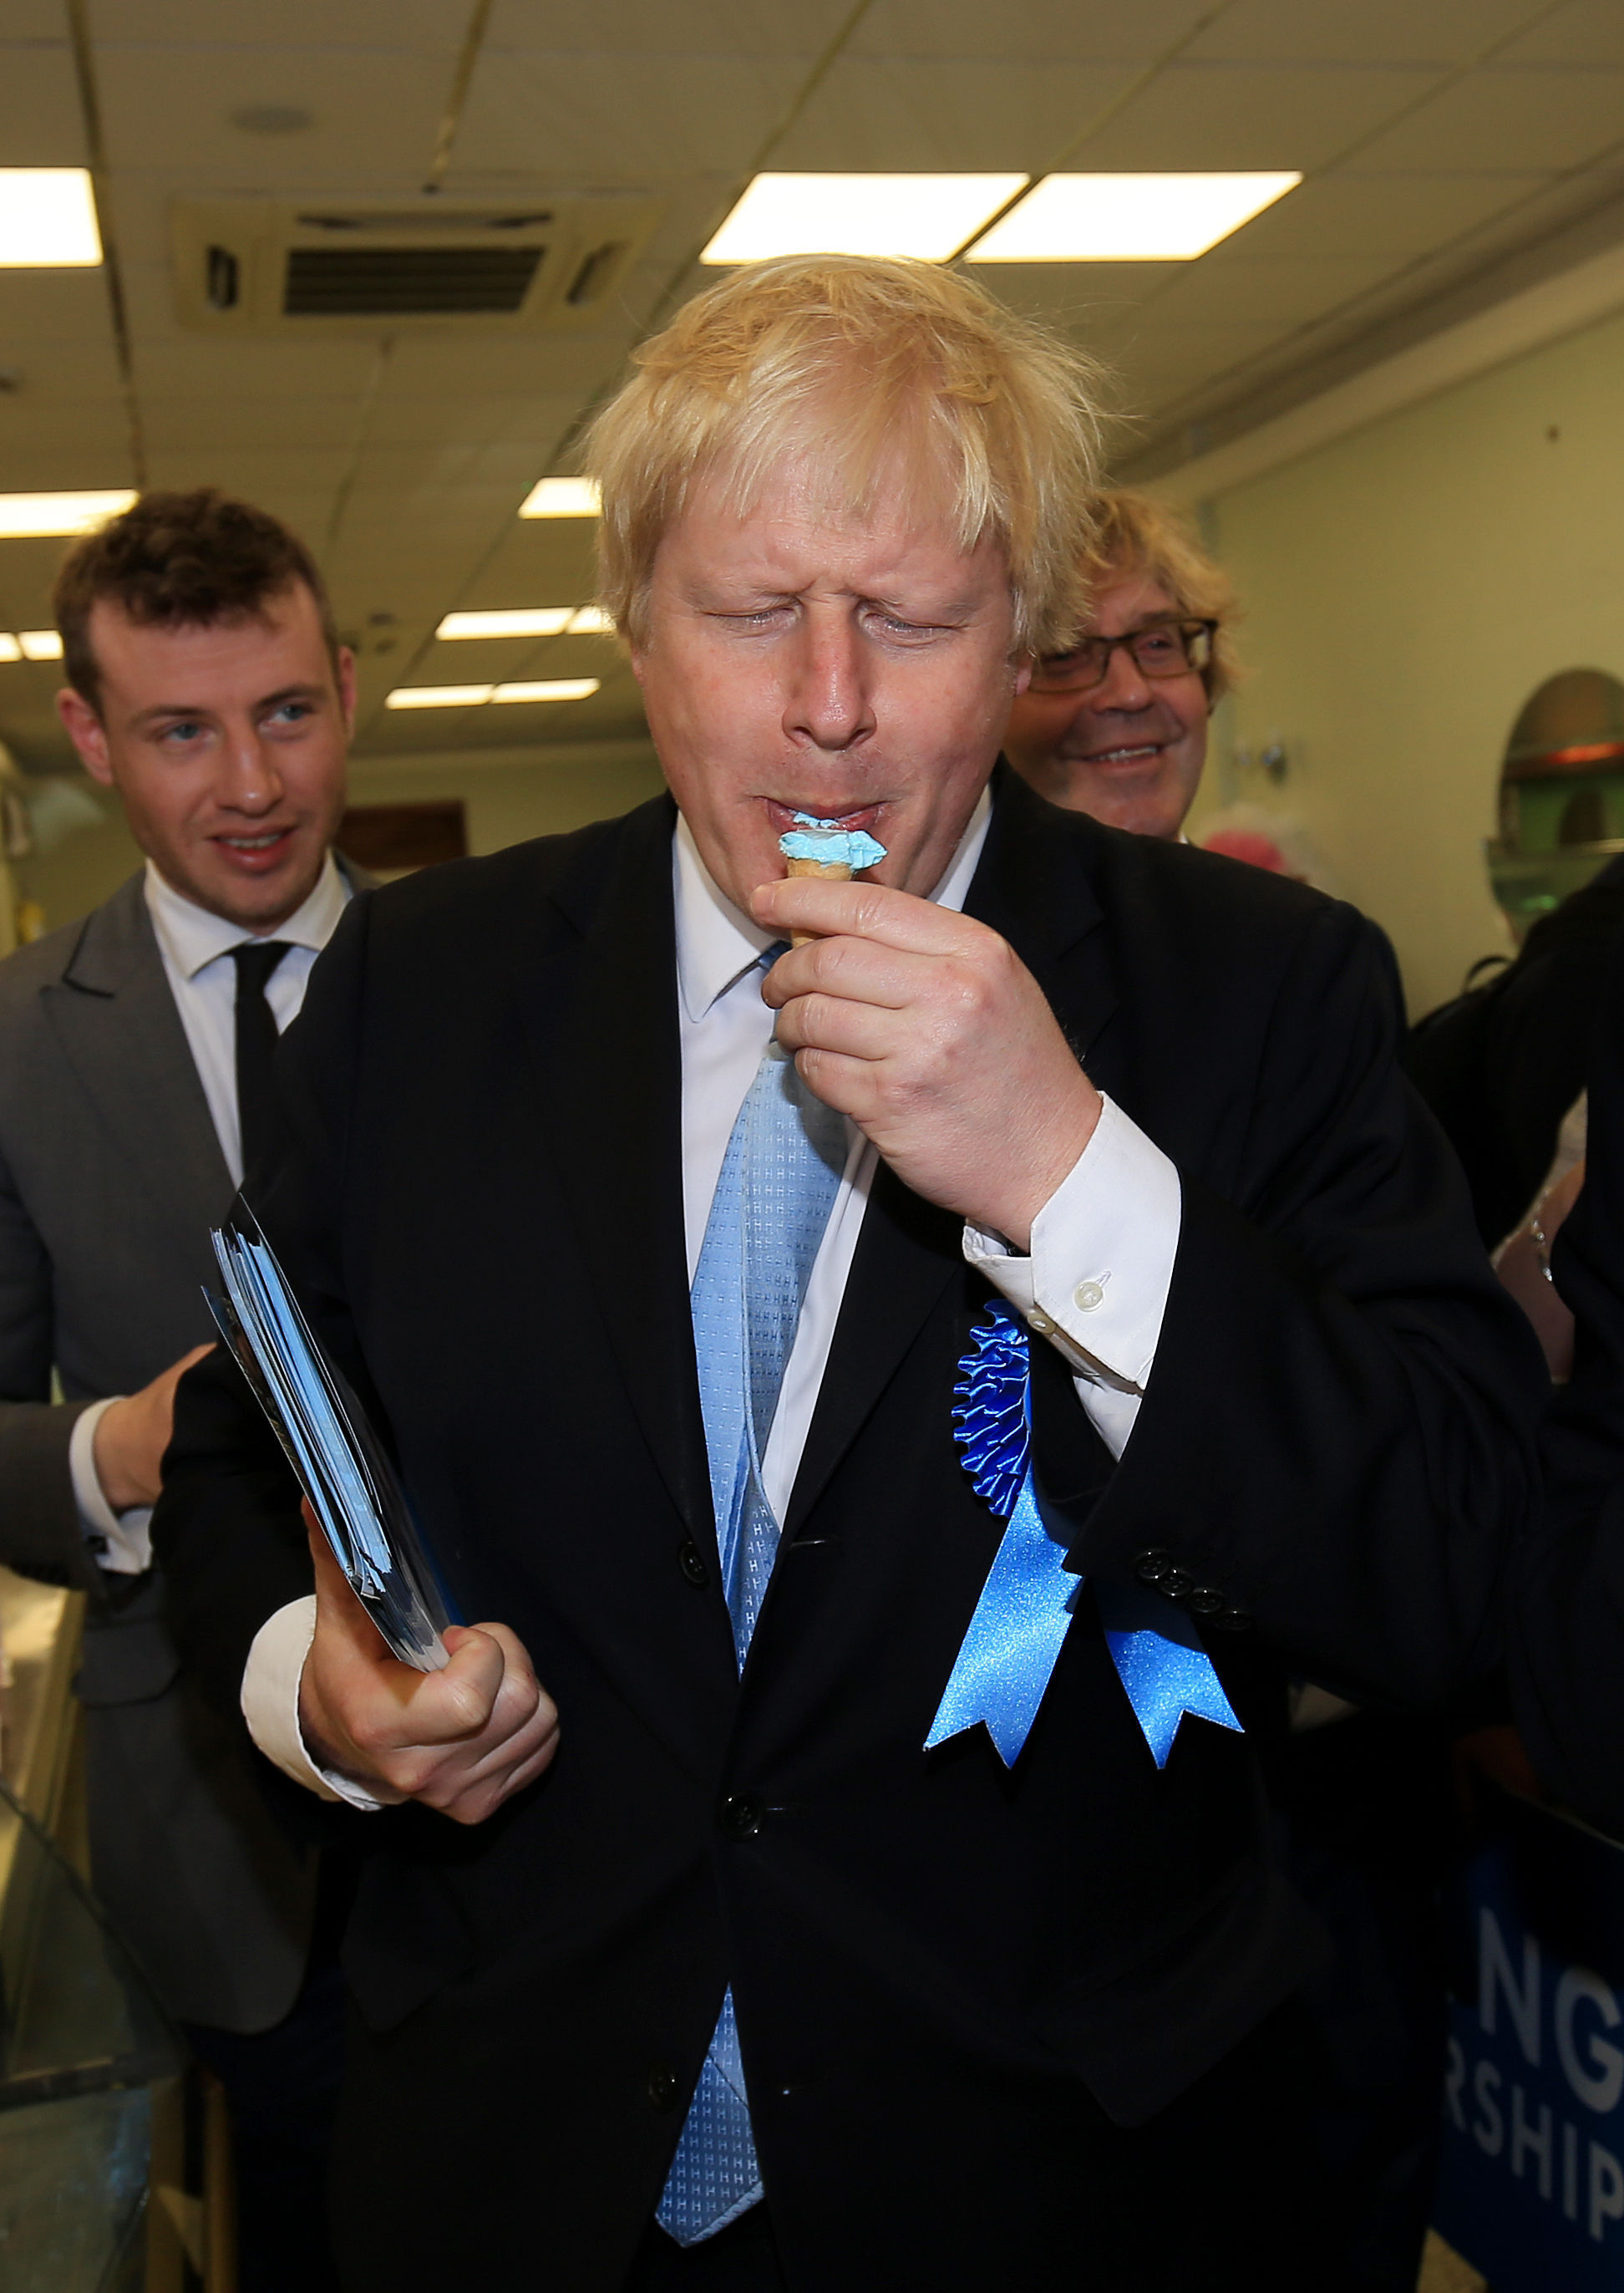 Mayor of London Boris Johnson, enjoys an ice cream during a General Election campaign walkabout in Ramsgate, Kent.